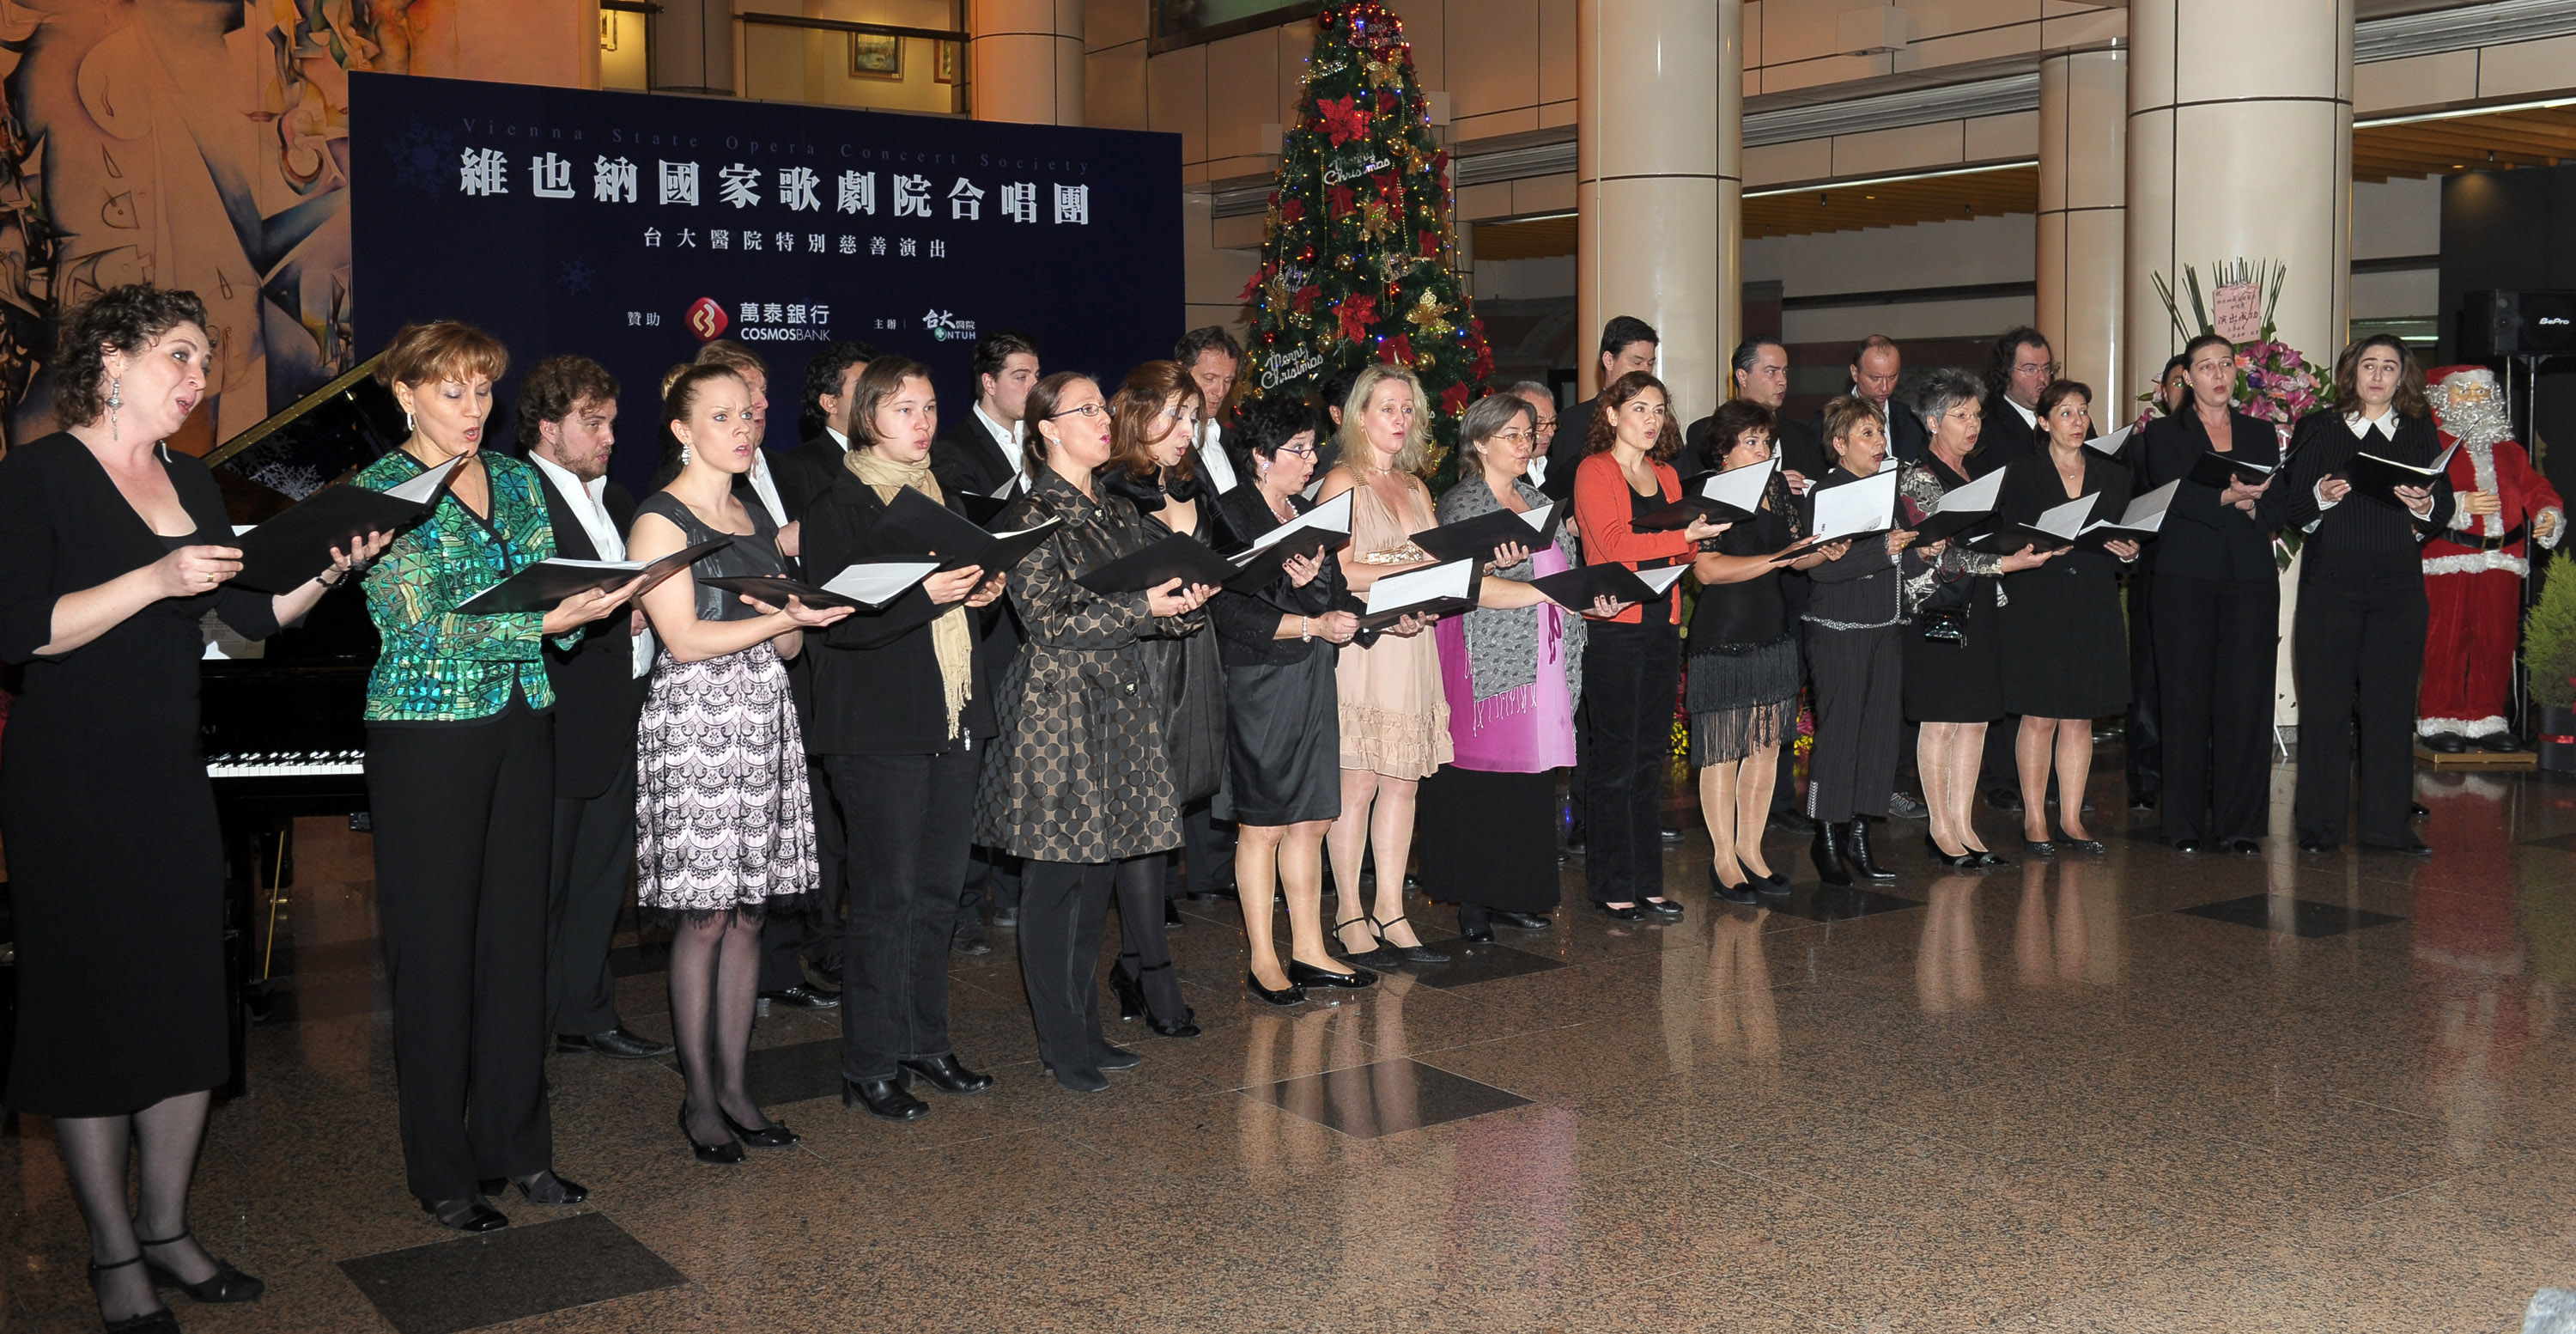 The Vienna State Opera Chorus performs in the National Taiwan University Hospital yesterday. (Central News Agency)